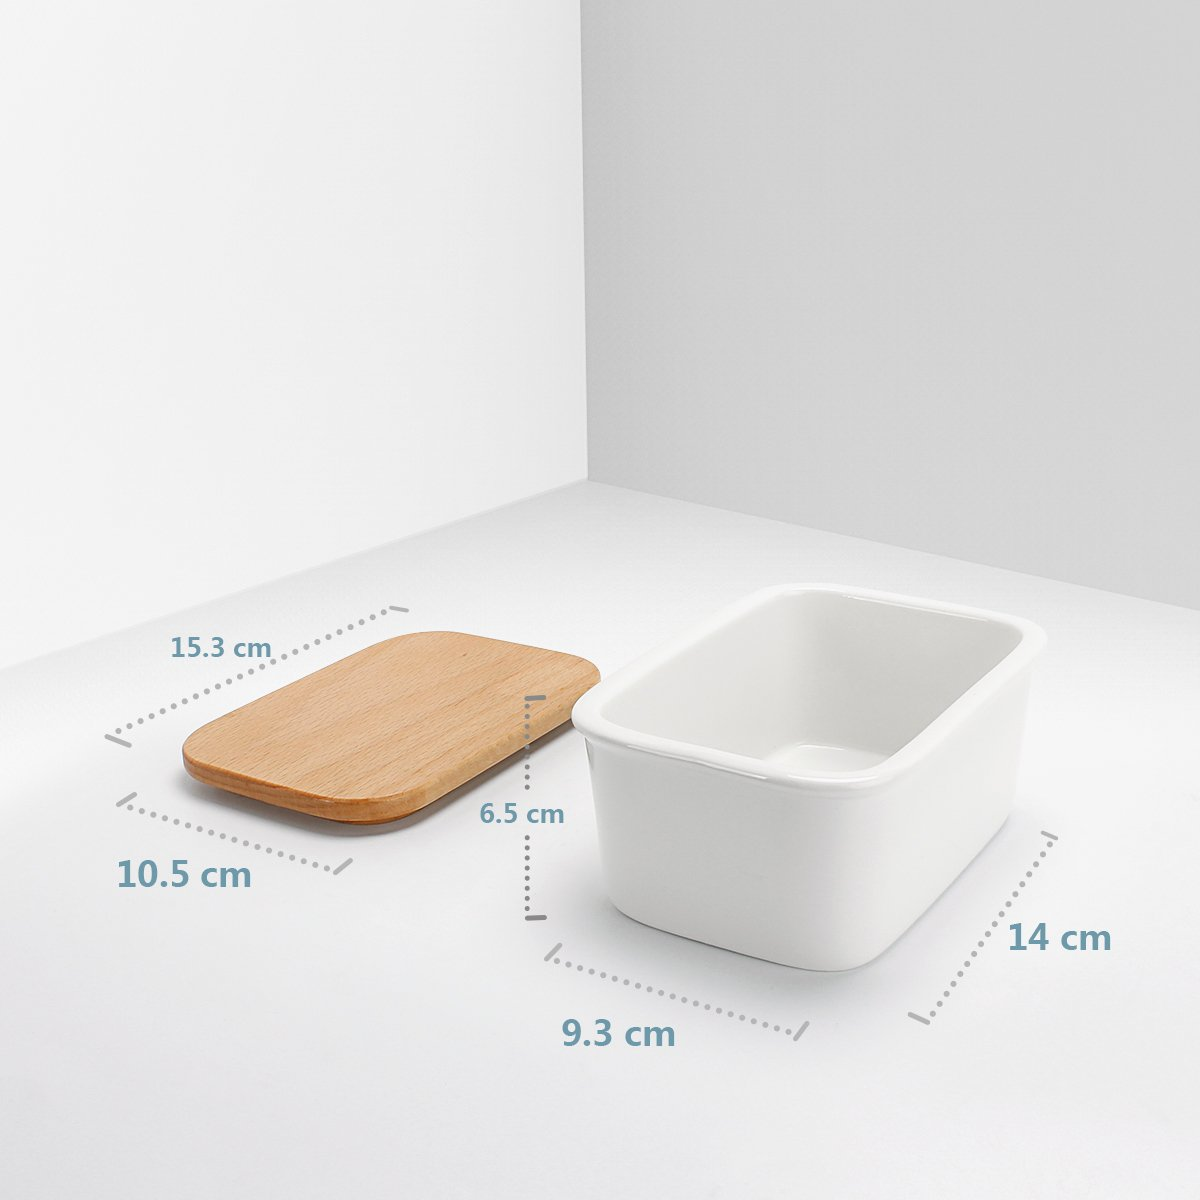 White Sweese 301.101 Butter Dish Porcelain Butter Container with Beech Wooden Lid